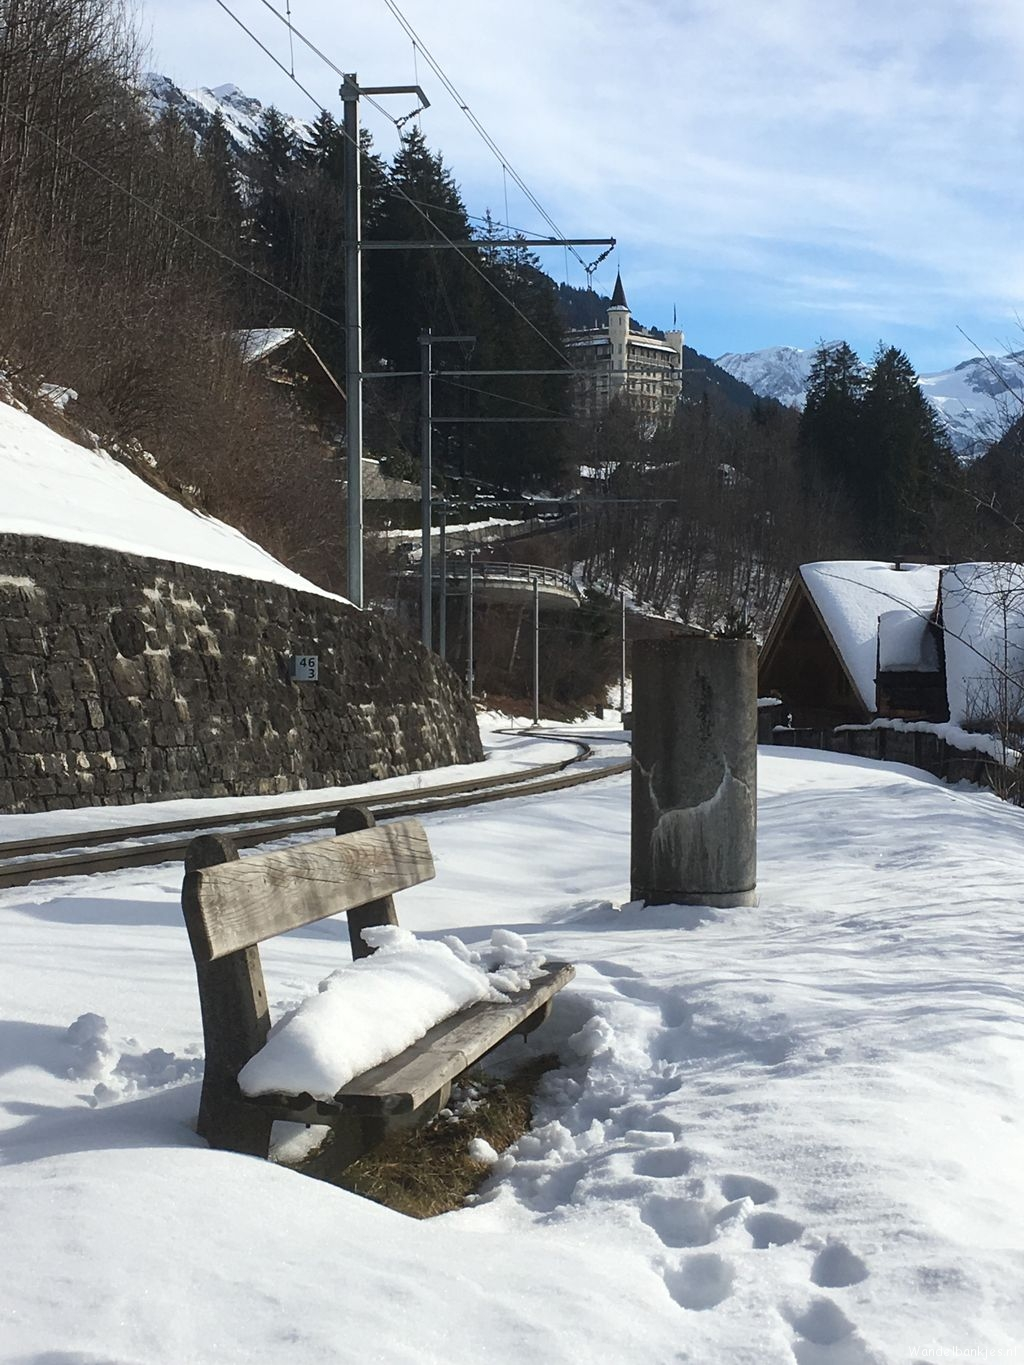 rt-huusgstaadhotel-walking-benches-on-this-bench-with-the-characteristic-palace-hotel-on-the-background-look-out-about-gstaad-https-tc